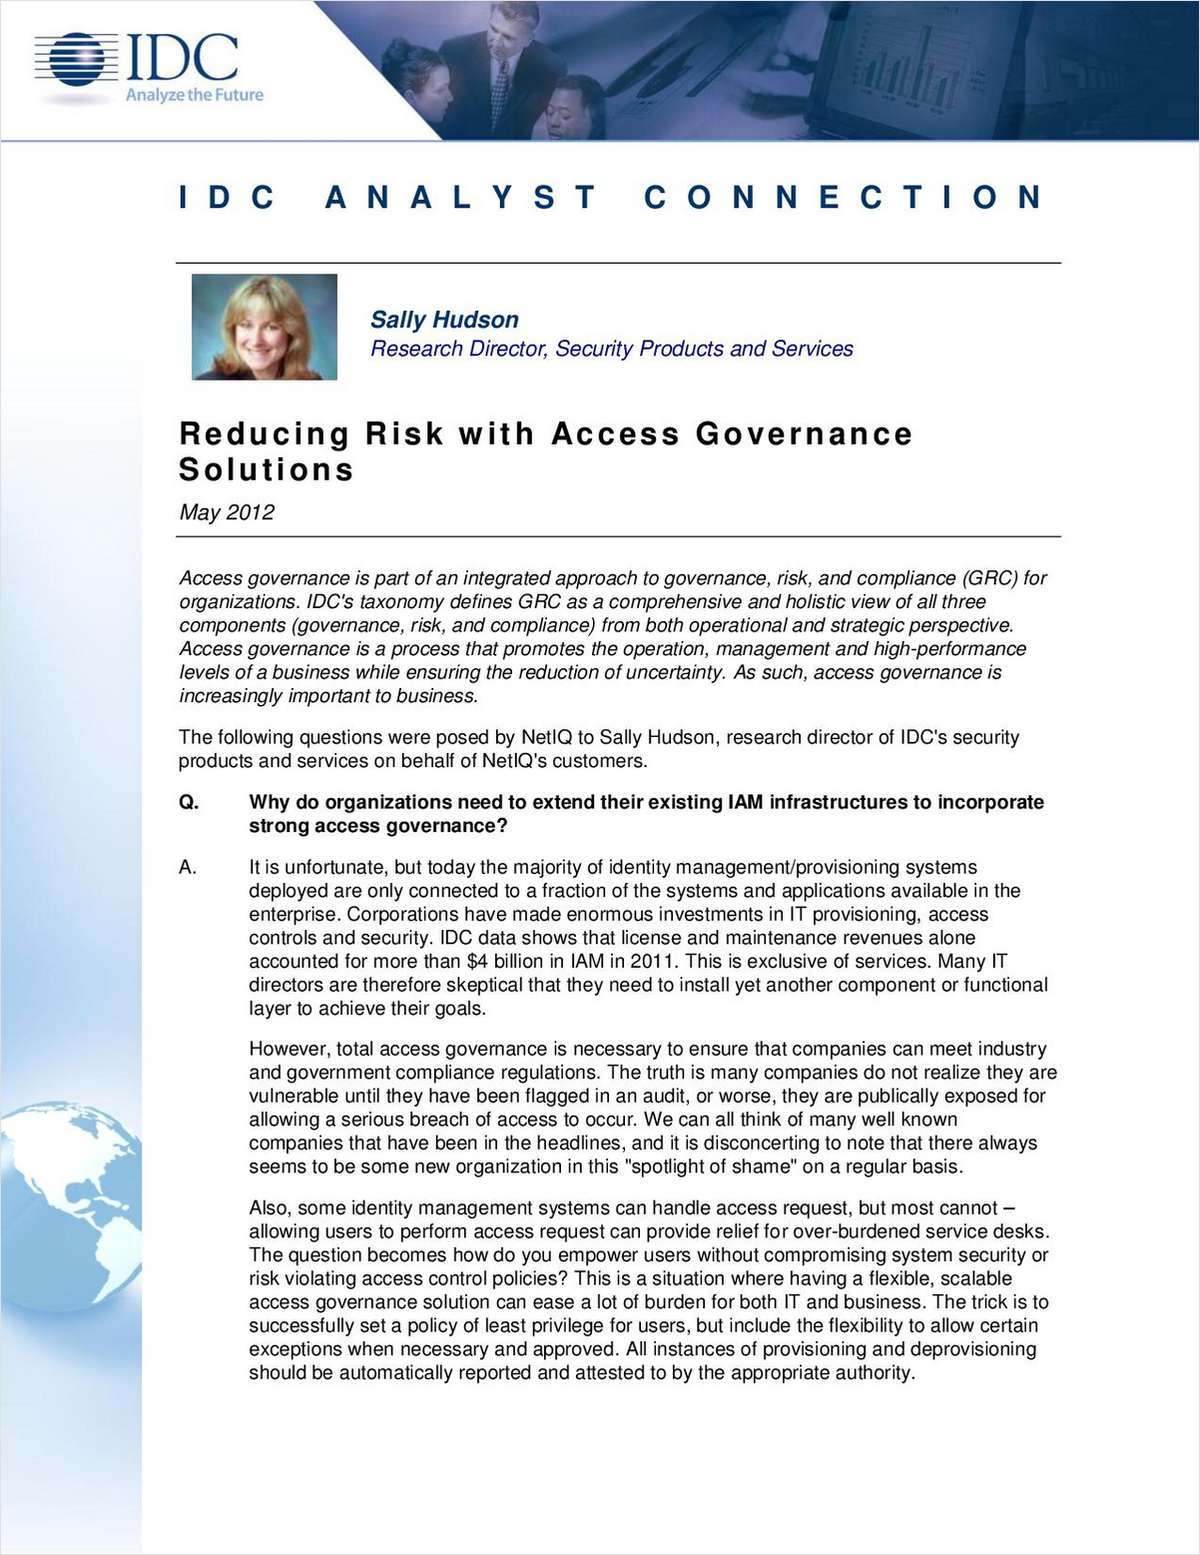 Reducing Risk with Access Governance Solutions